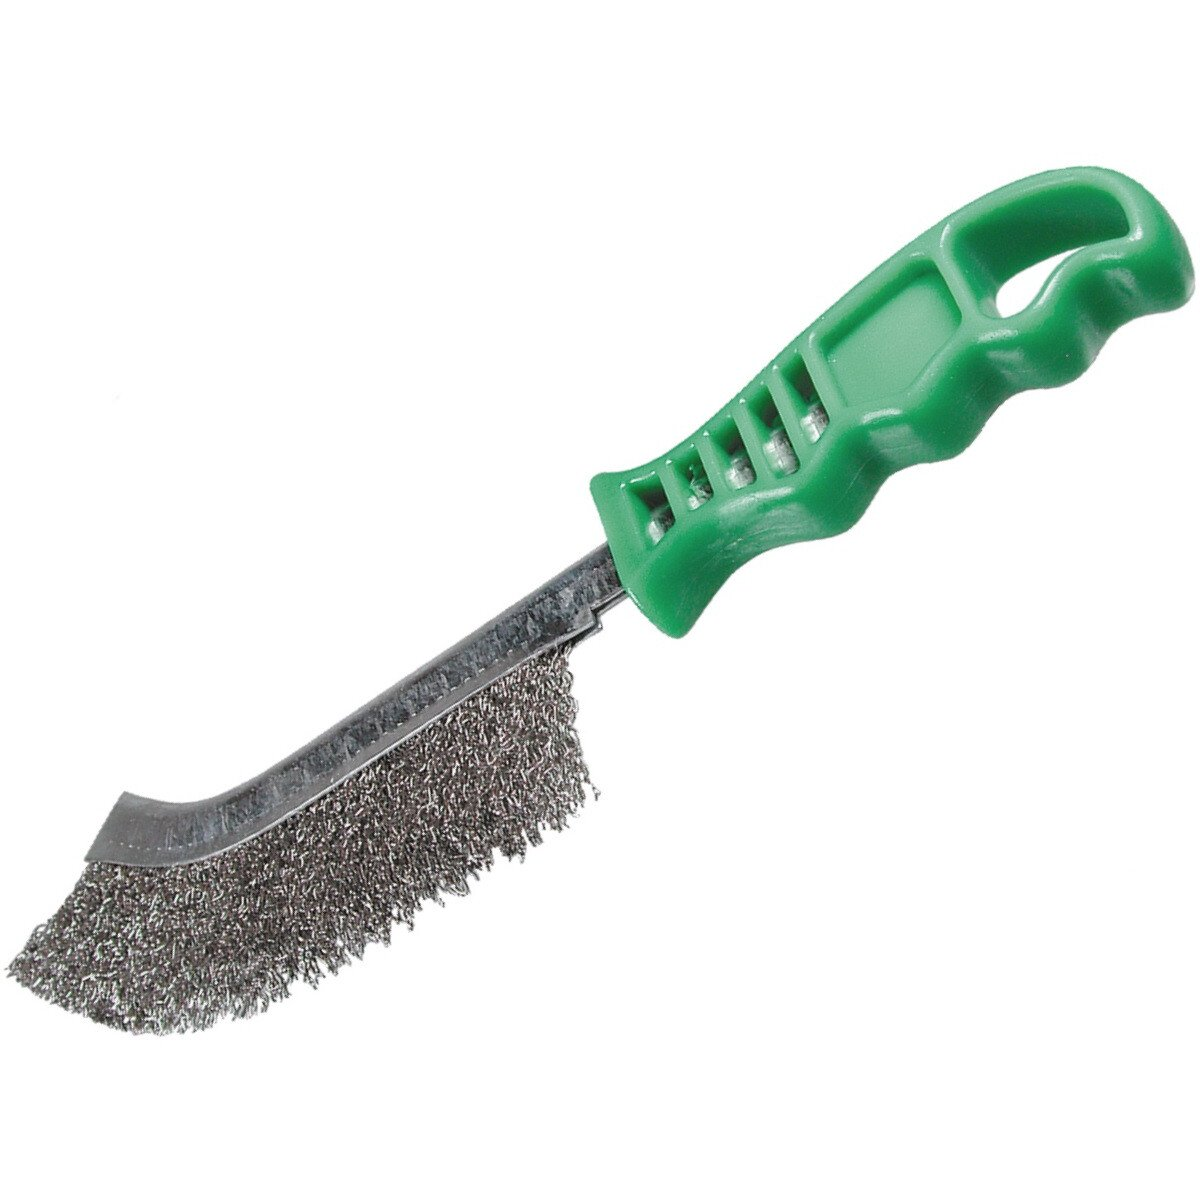 Osborn 0008-462-391 Wire Brush (Stainless Steel) Green Handled